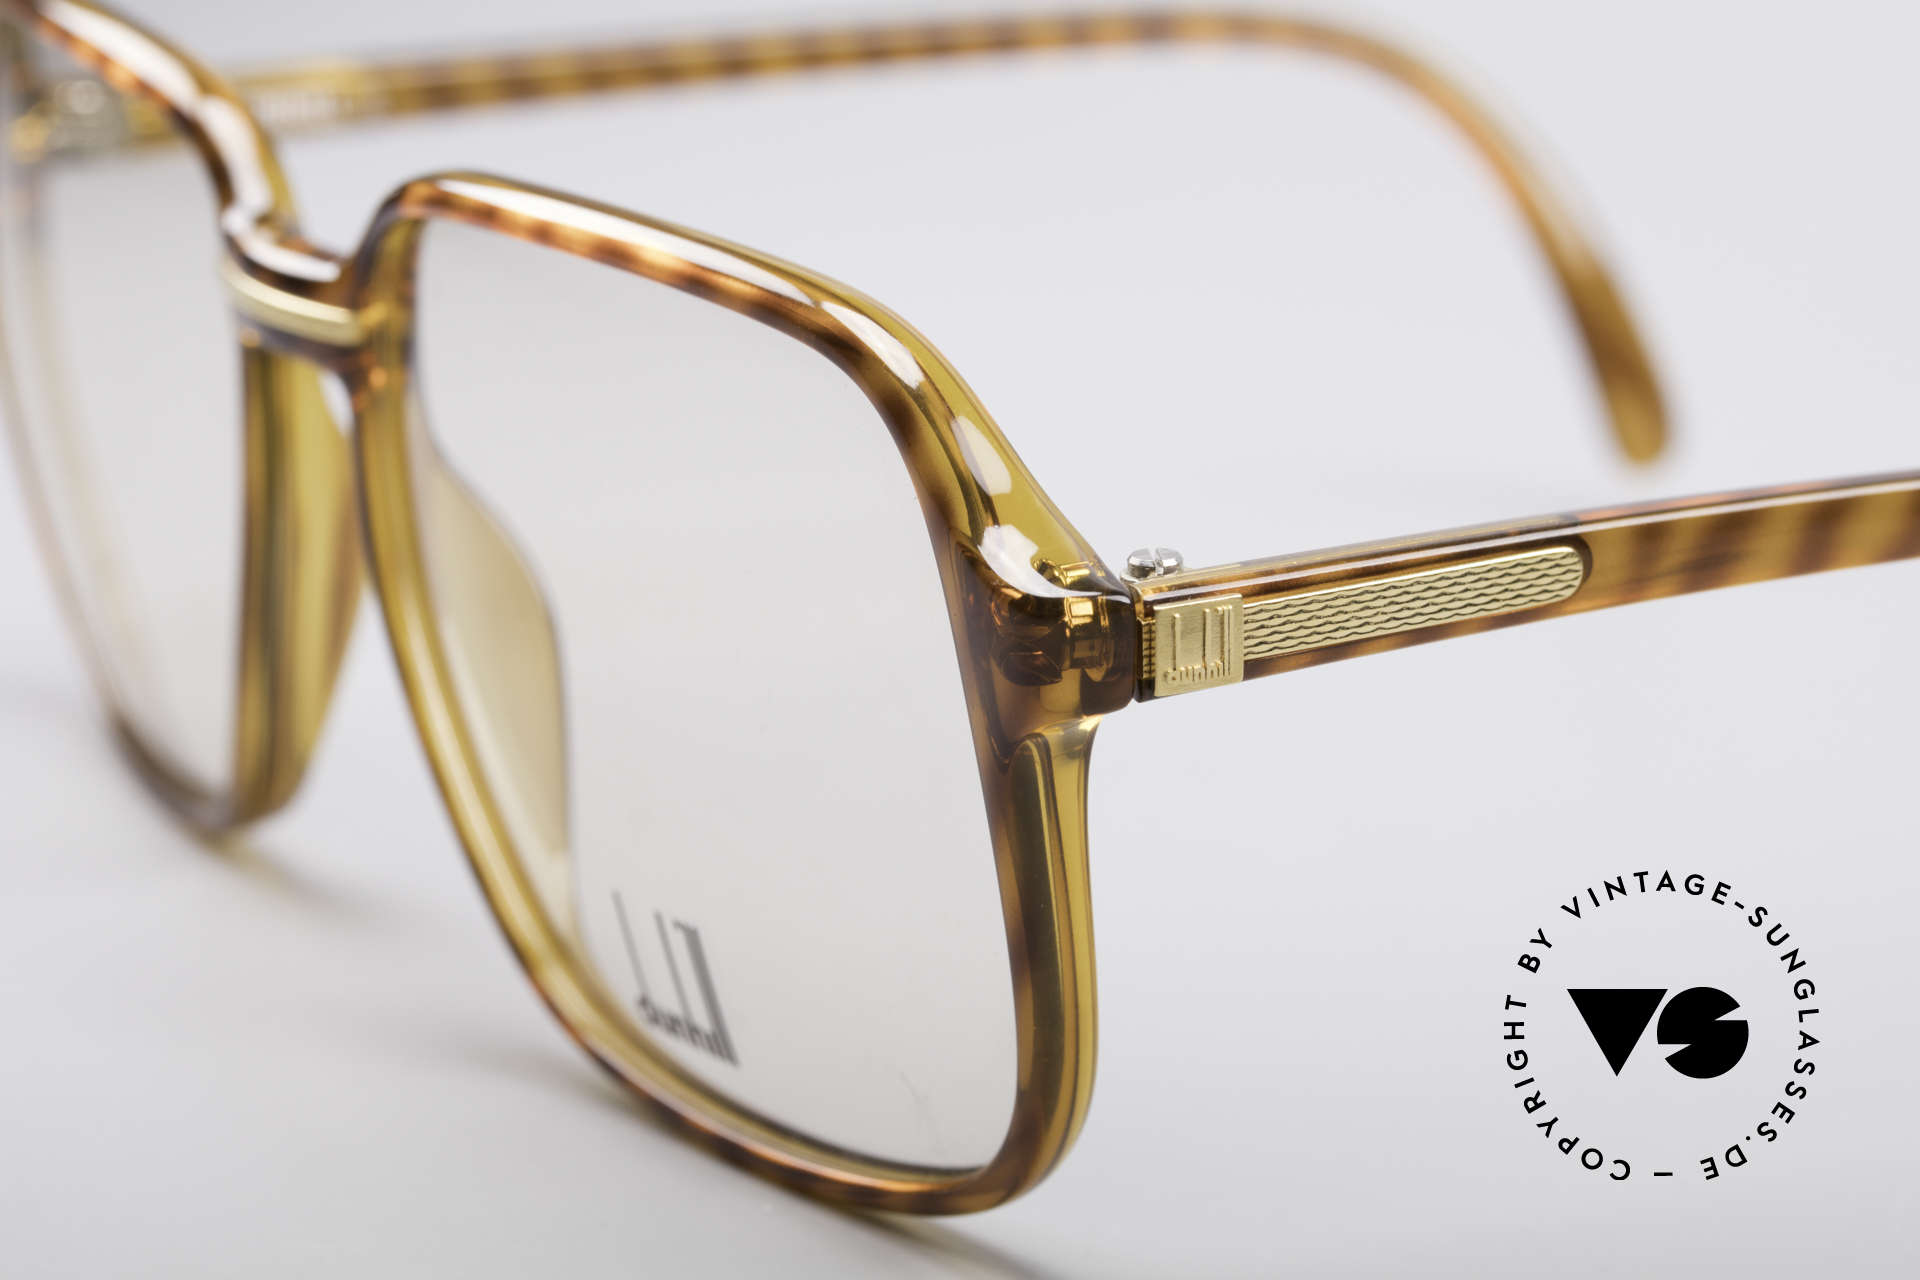 Dunhill 6060 Classic 80's Eyeglasses, 'old school' HipHop glasses or 'nerd style'; these days, Made for Men